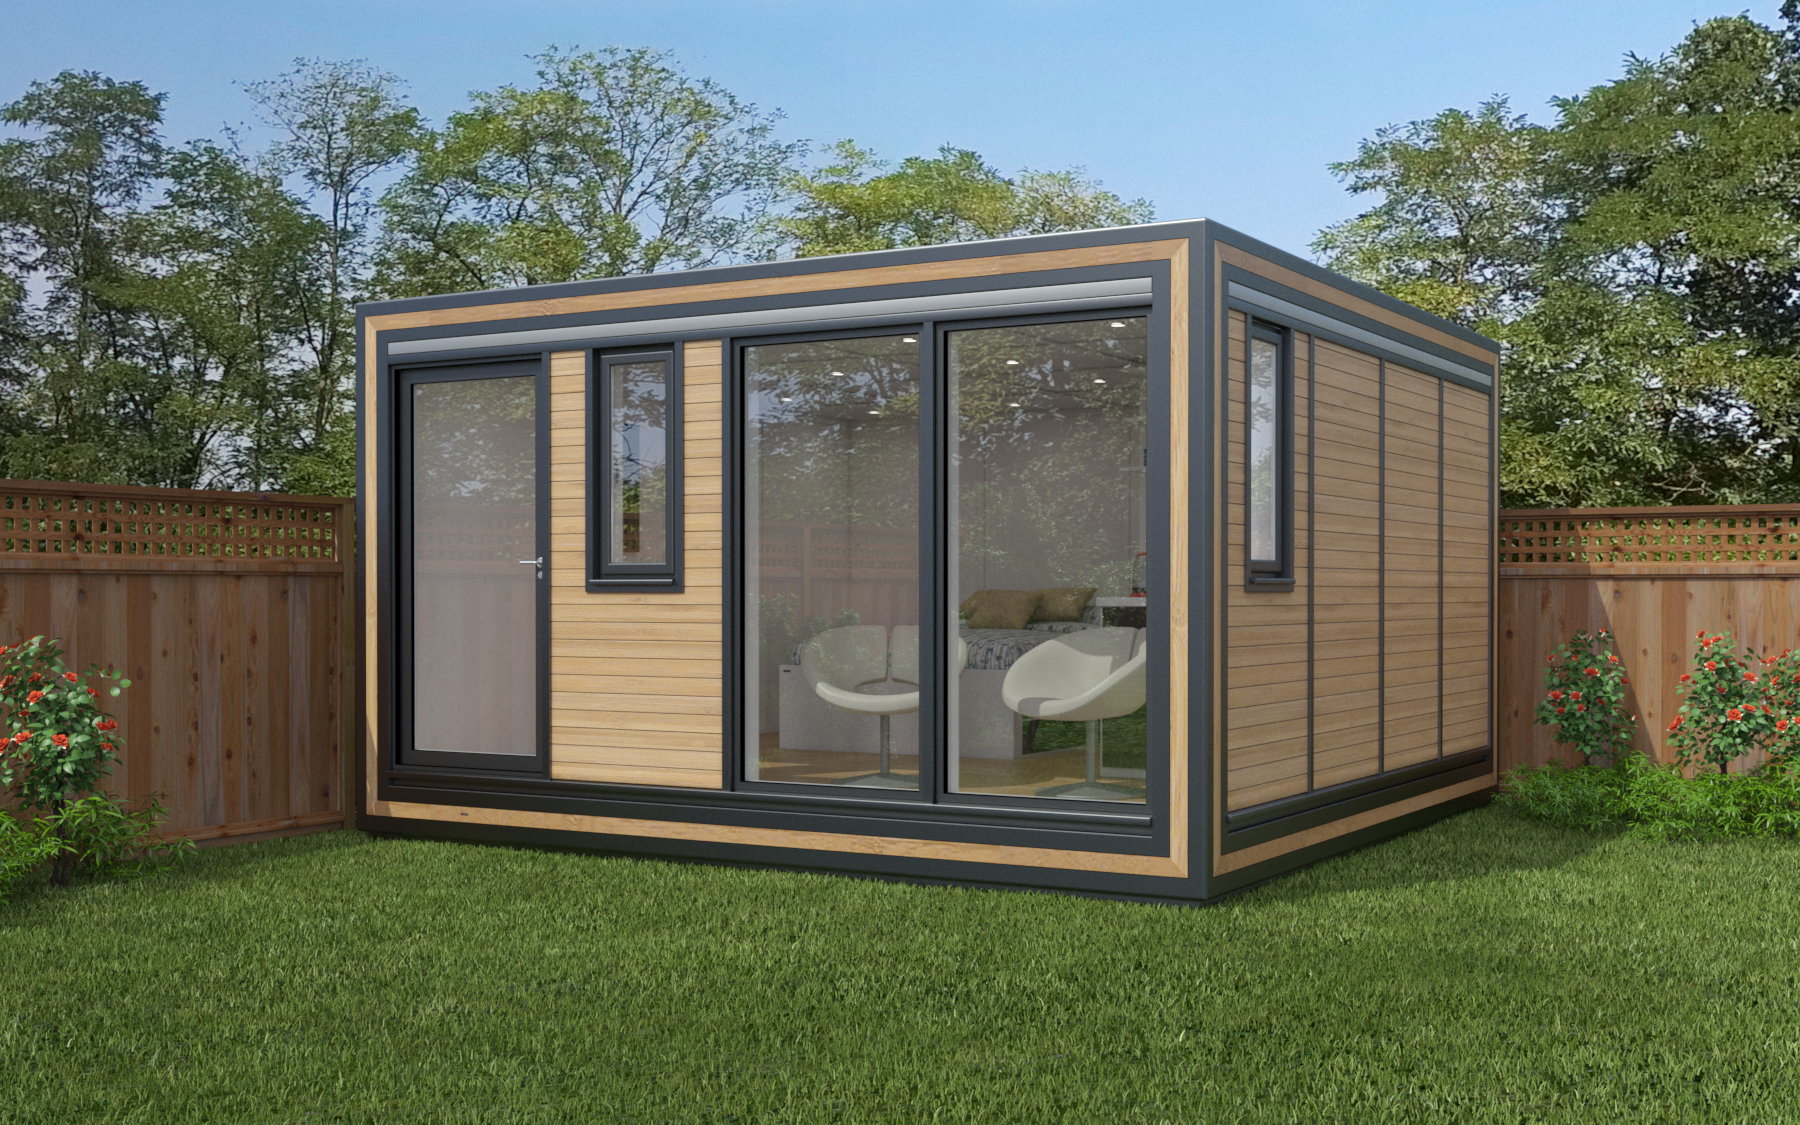 ZEDBOX 440  (4 x 4)  Internal Size: 4259 x 4259  External Size: 4279 x 4279  Bed Options: Single or Double  Kitchen Options: Micro Kitchen or Kitchen  Wet Room Options: Yes  Portico: No  Price:  £32,000    Optional Extras    Request Zedbox Catalogue